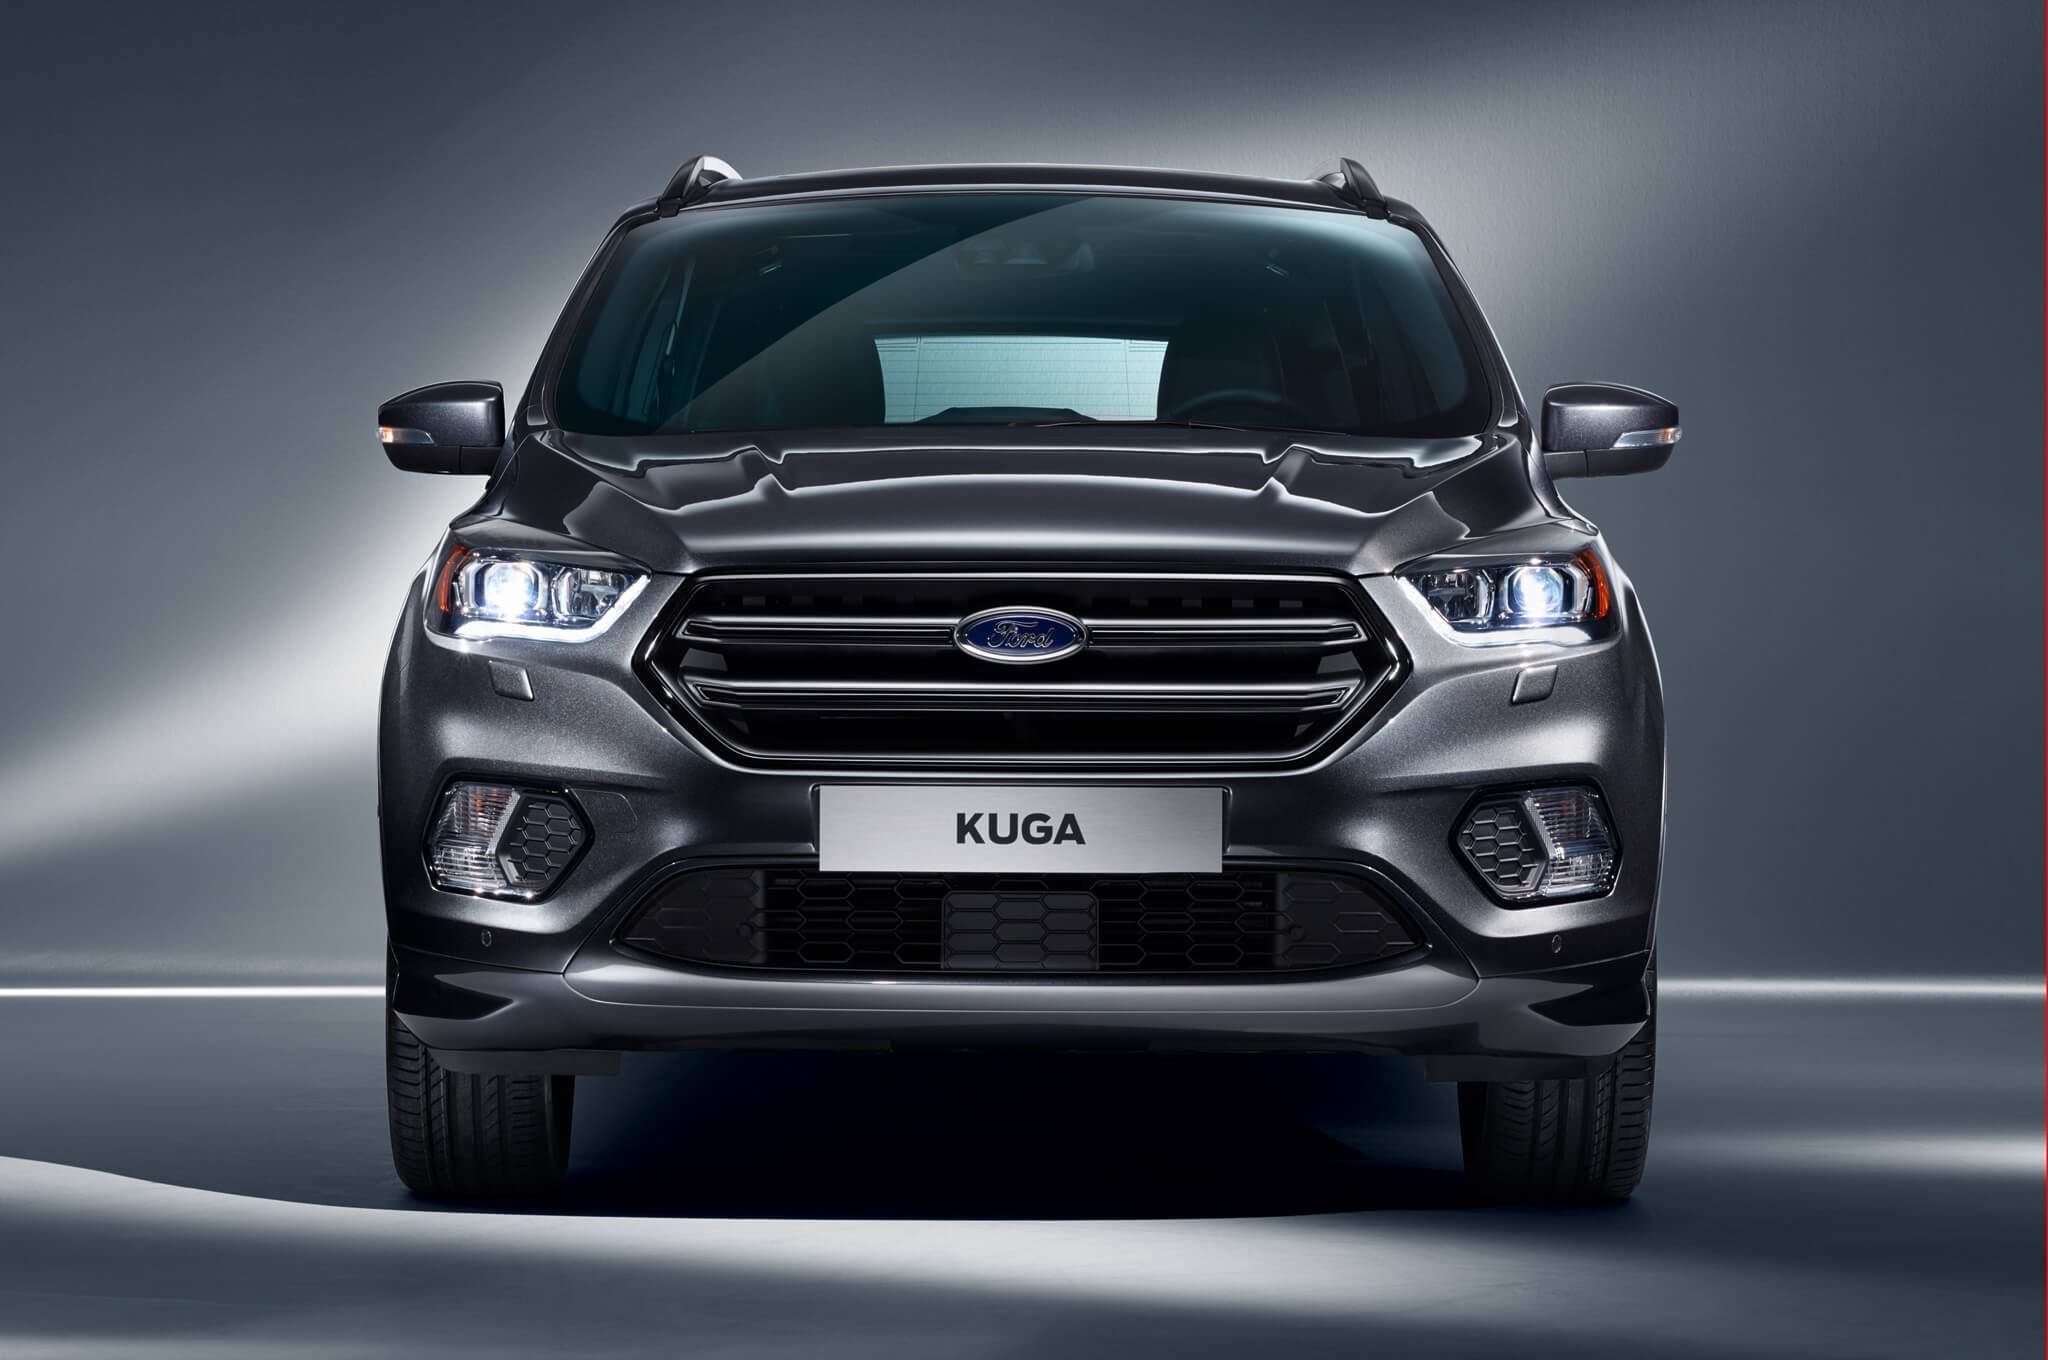 2020 Ford Kuga Review Price Provides The Latest Information About Ford Cars Release Date Redesign And Rumors Our Cove Ford Kuga Ford Kuga 2016 Upcoming Cars